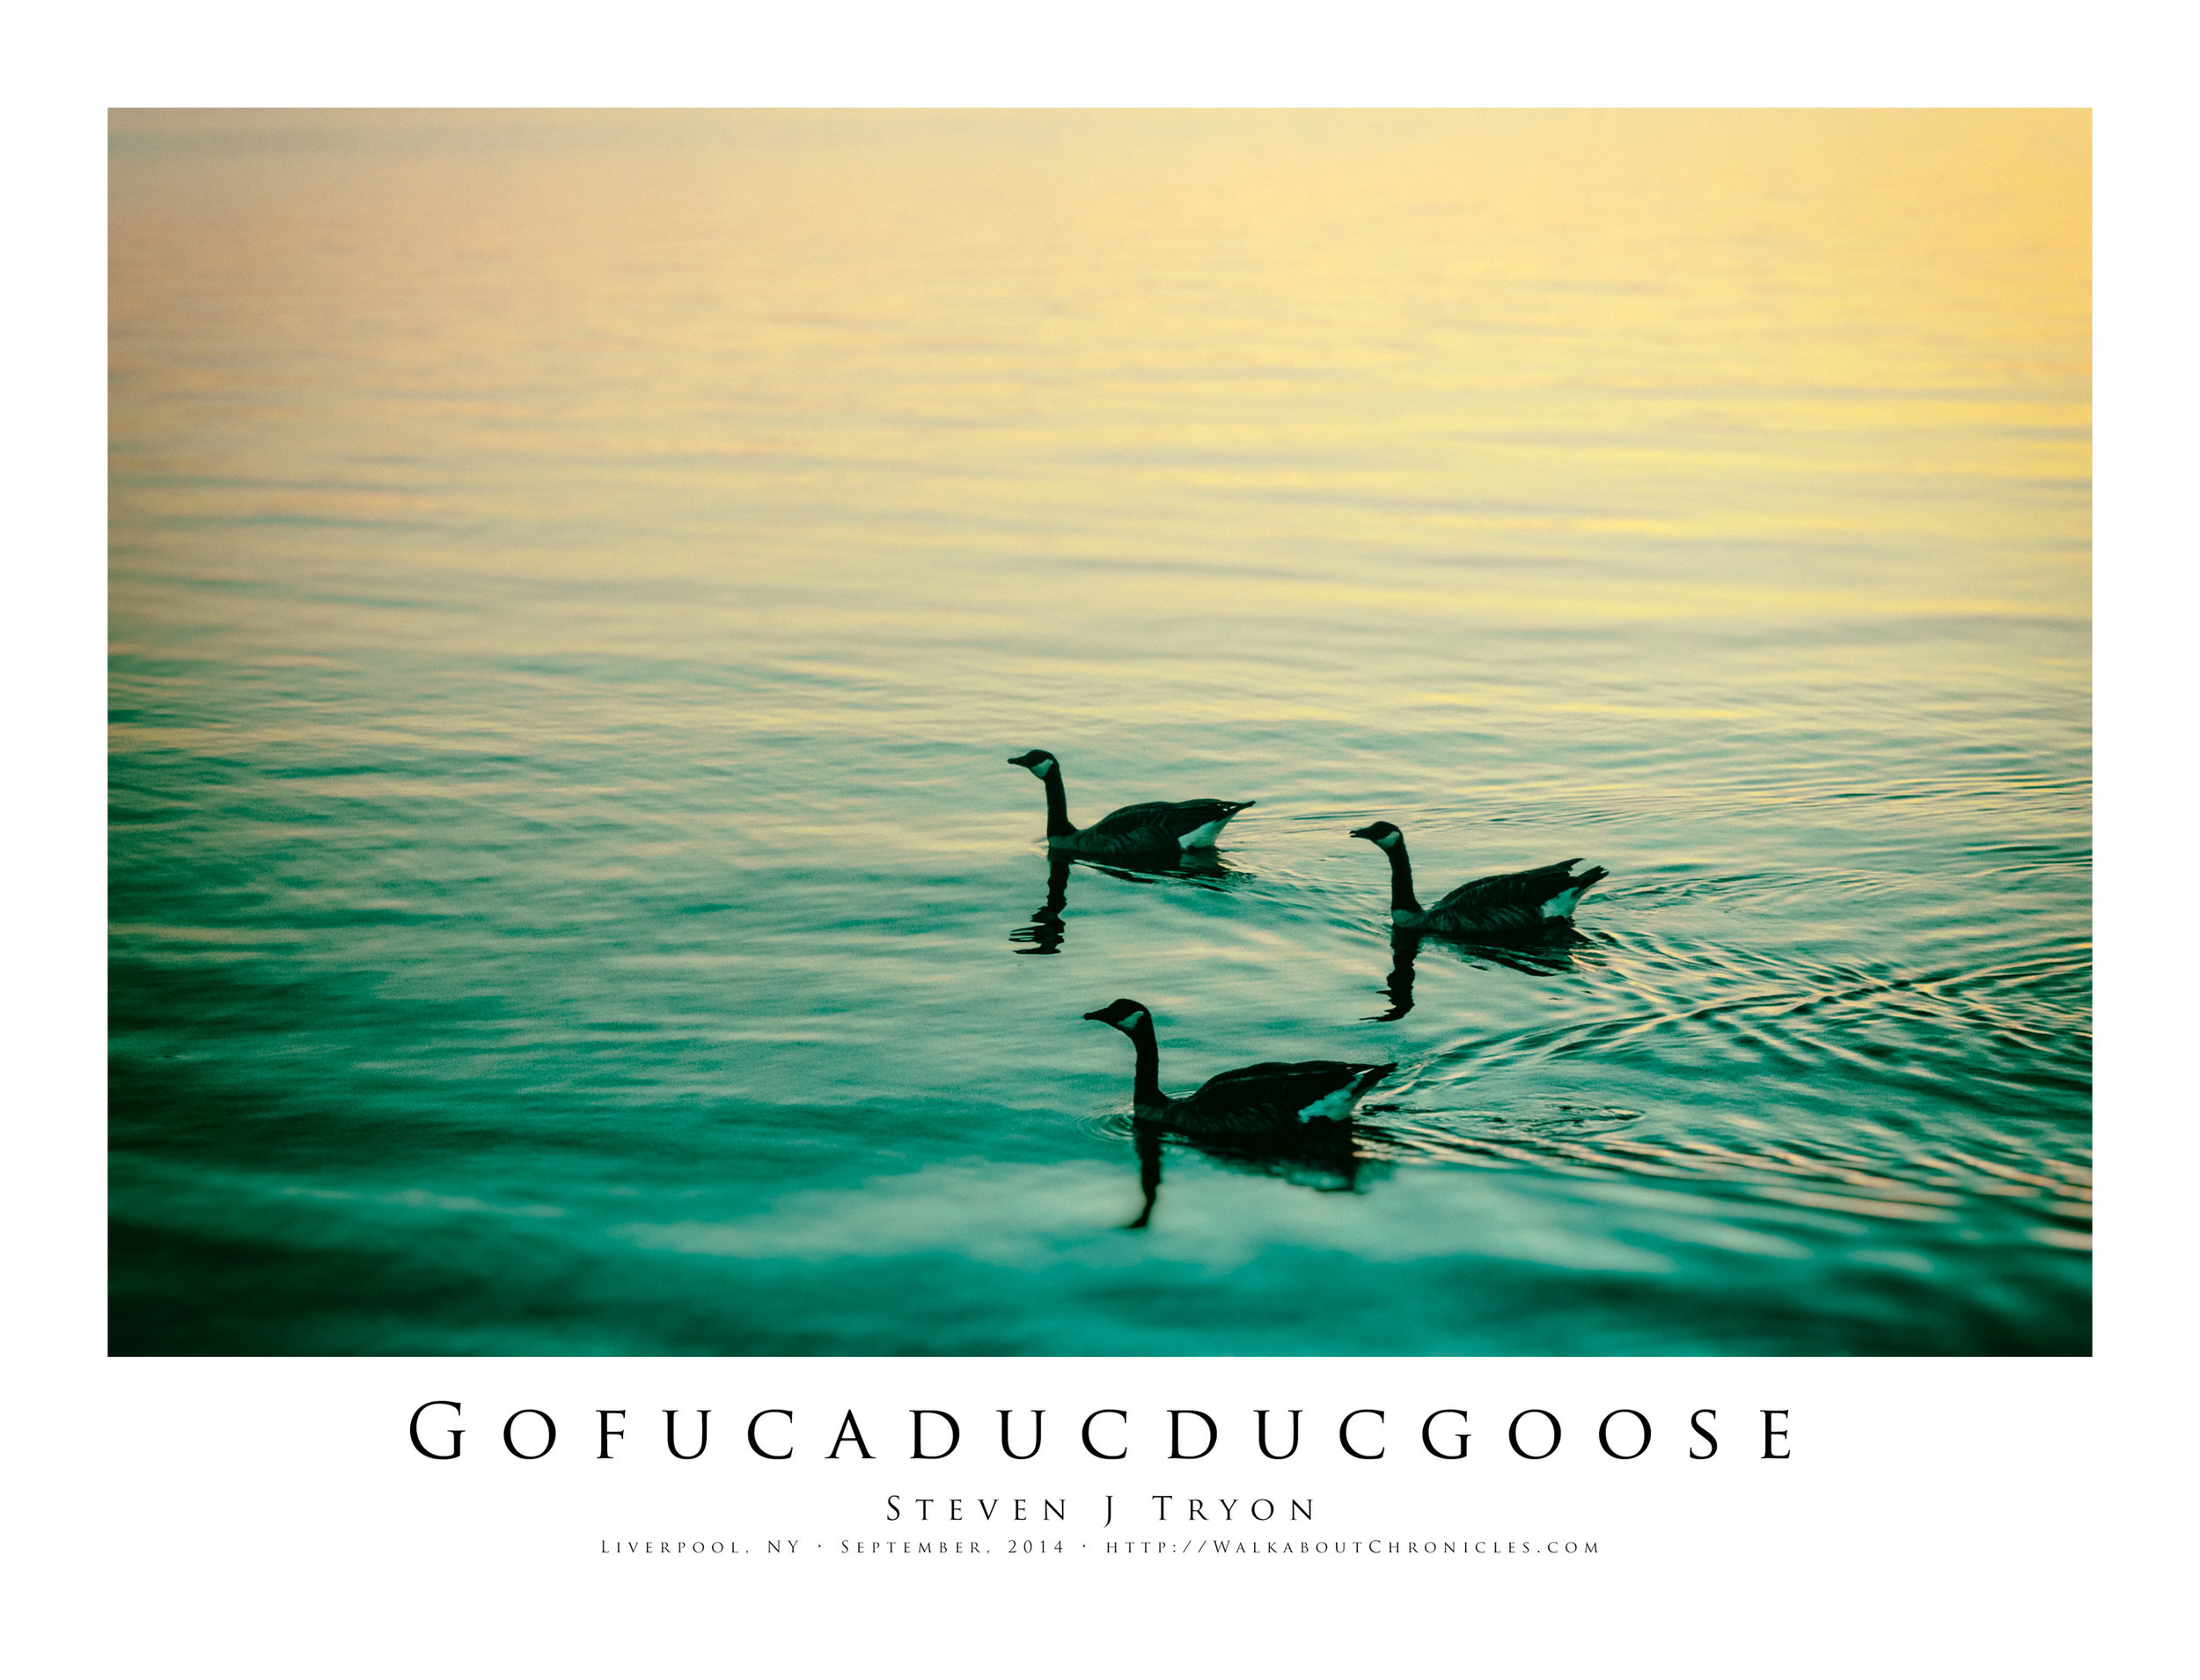 Gofucaducducgoose